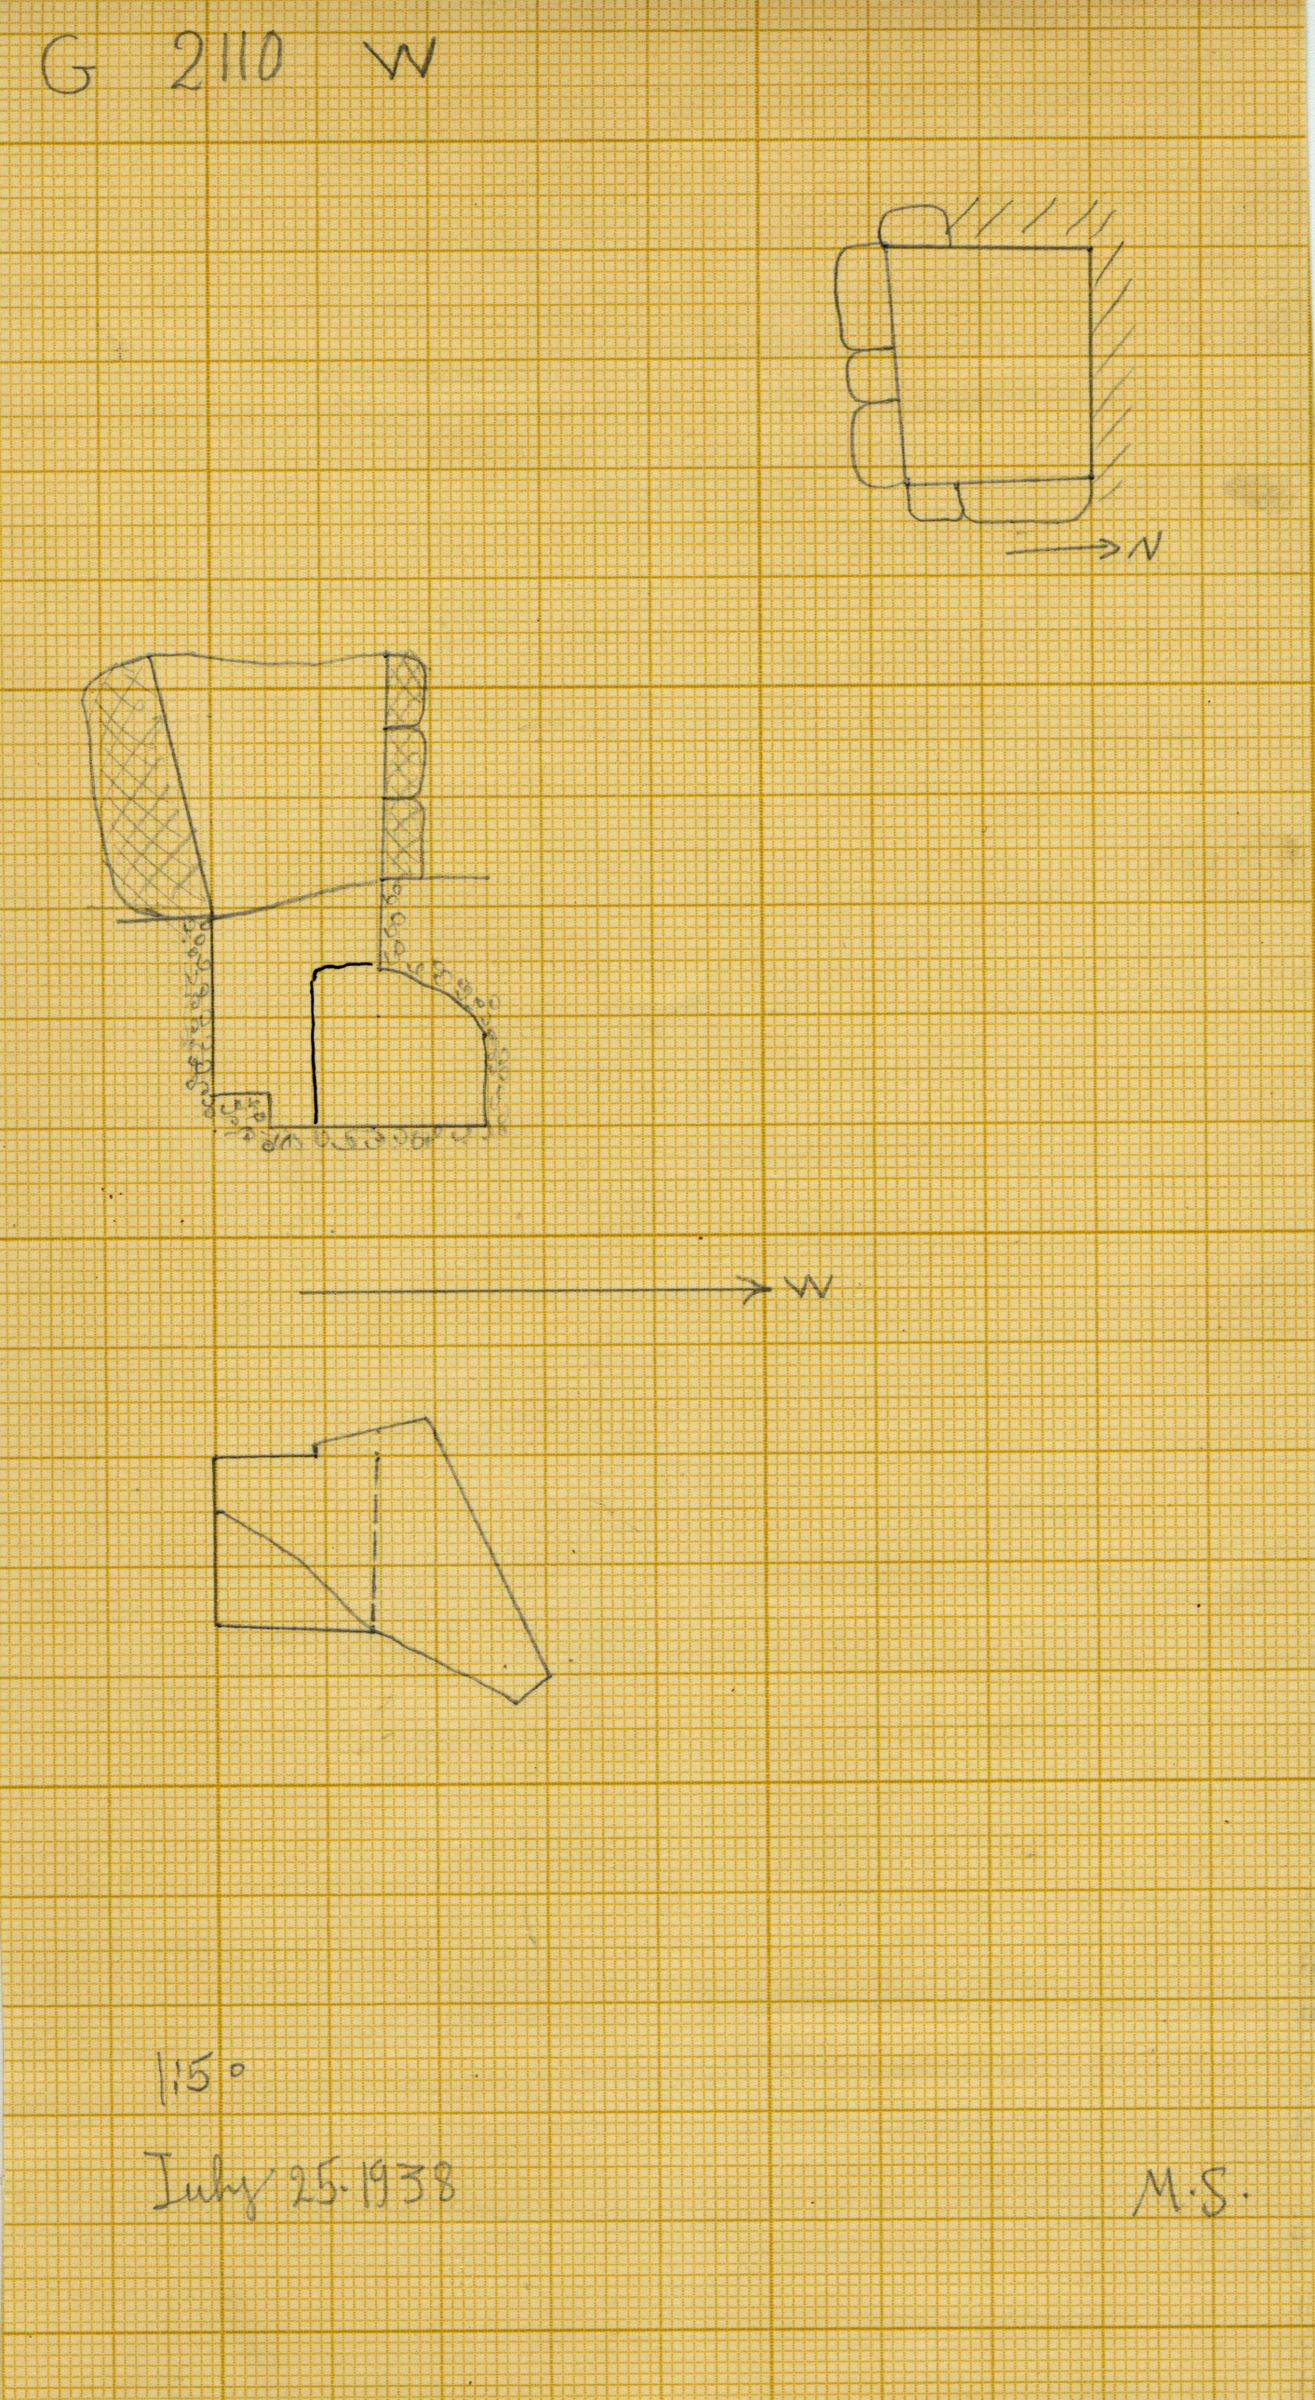 Maps and plans: G 2110, Shaft W